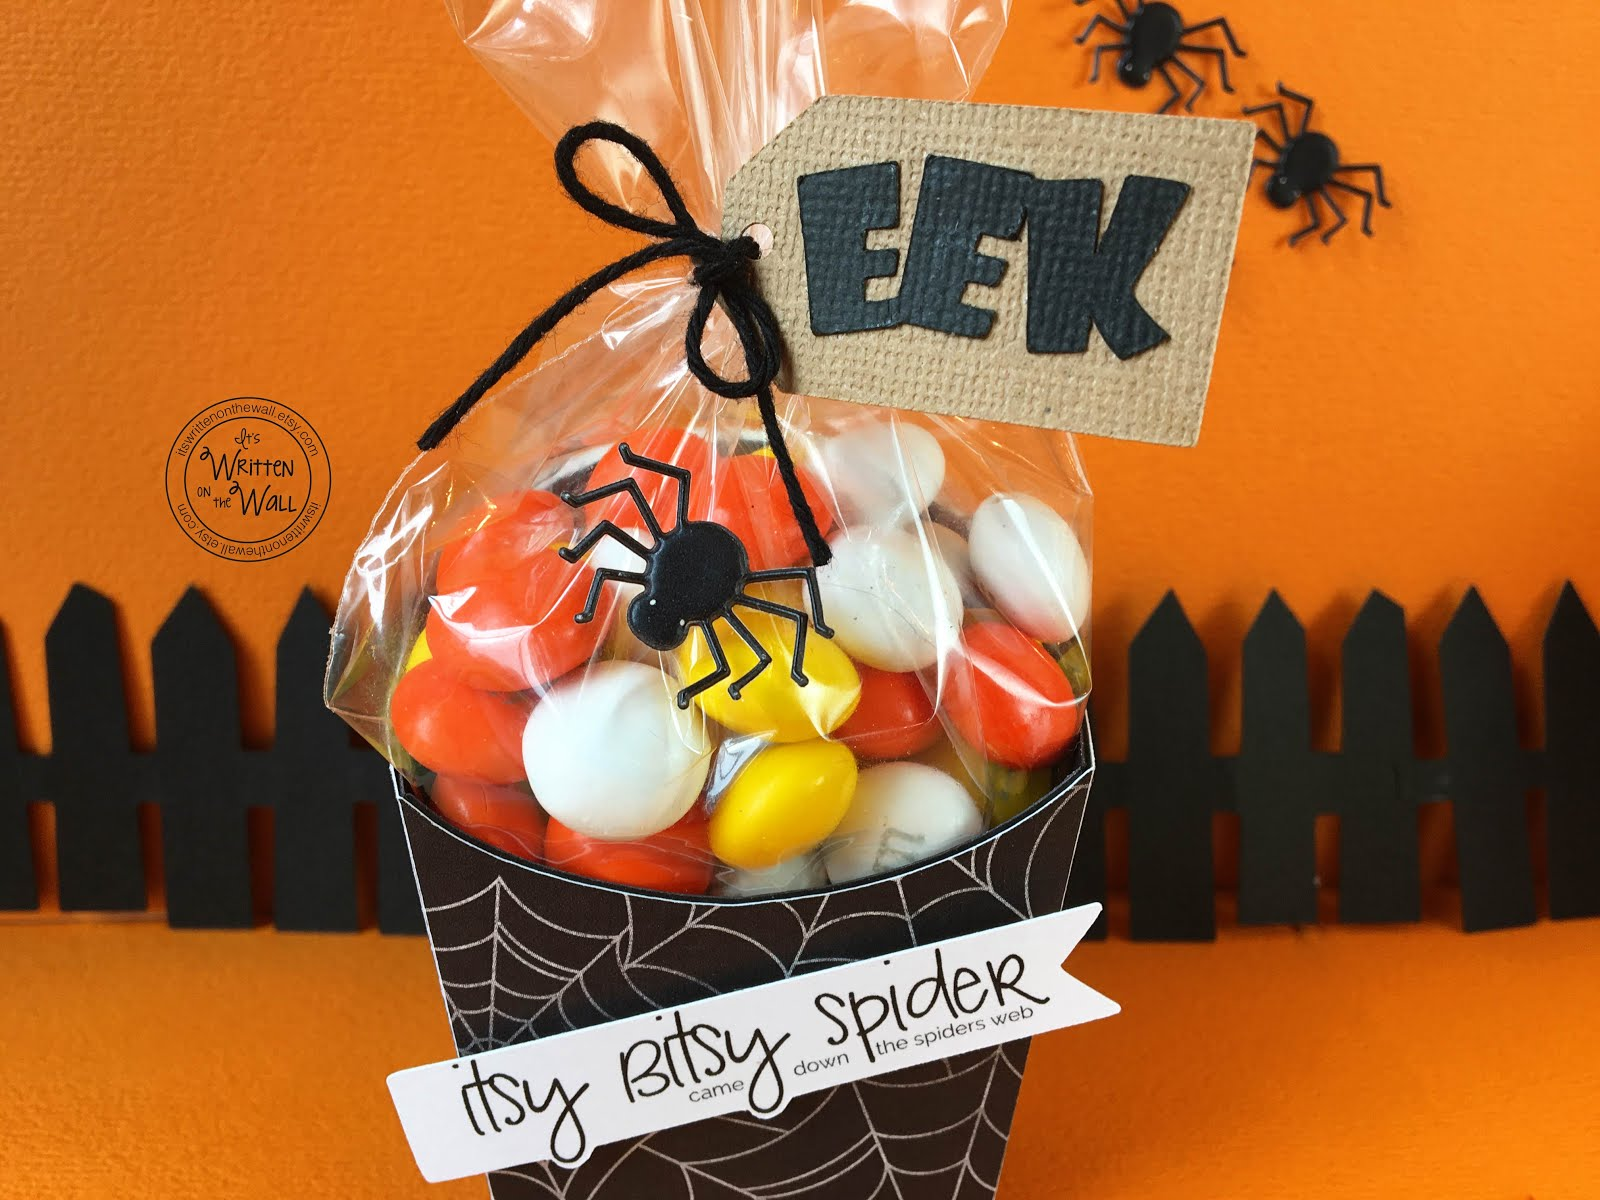 Itsy Bitsy Spider Treat Box